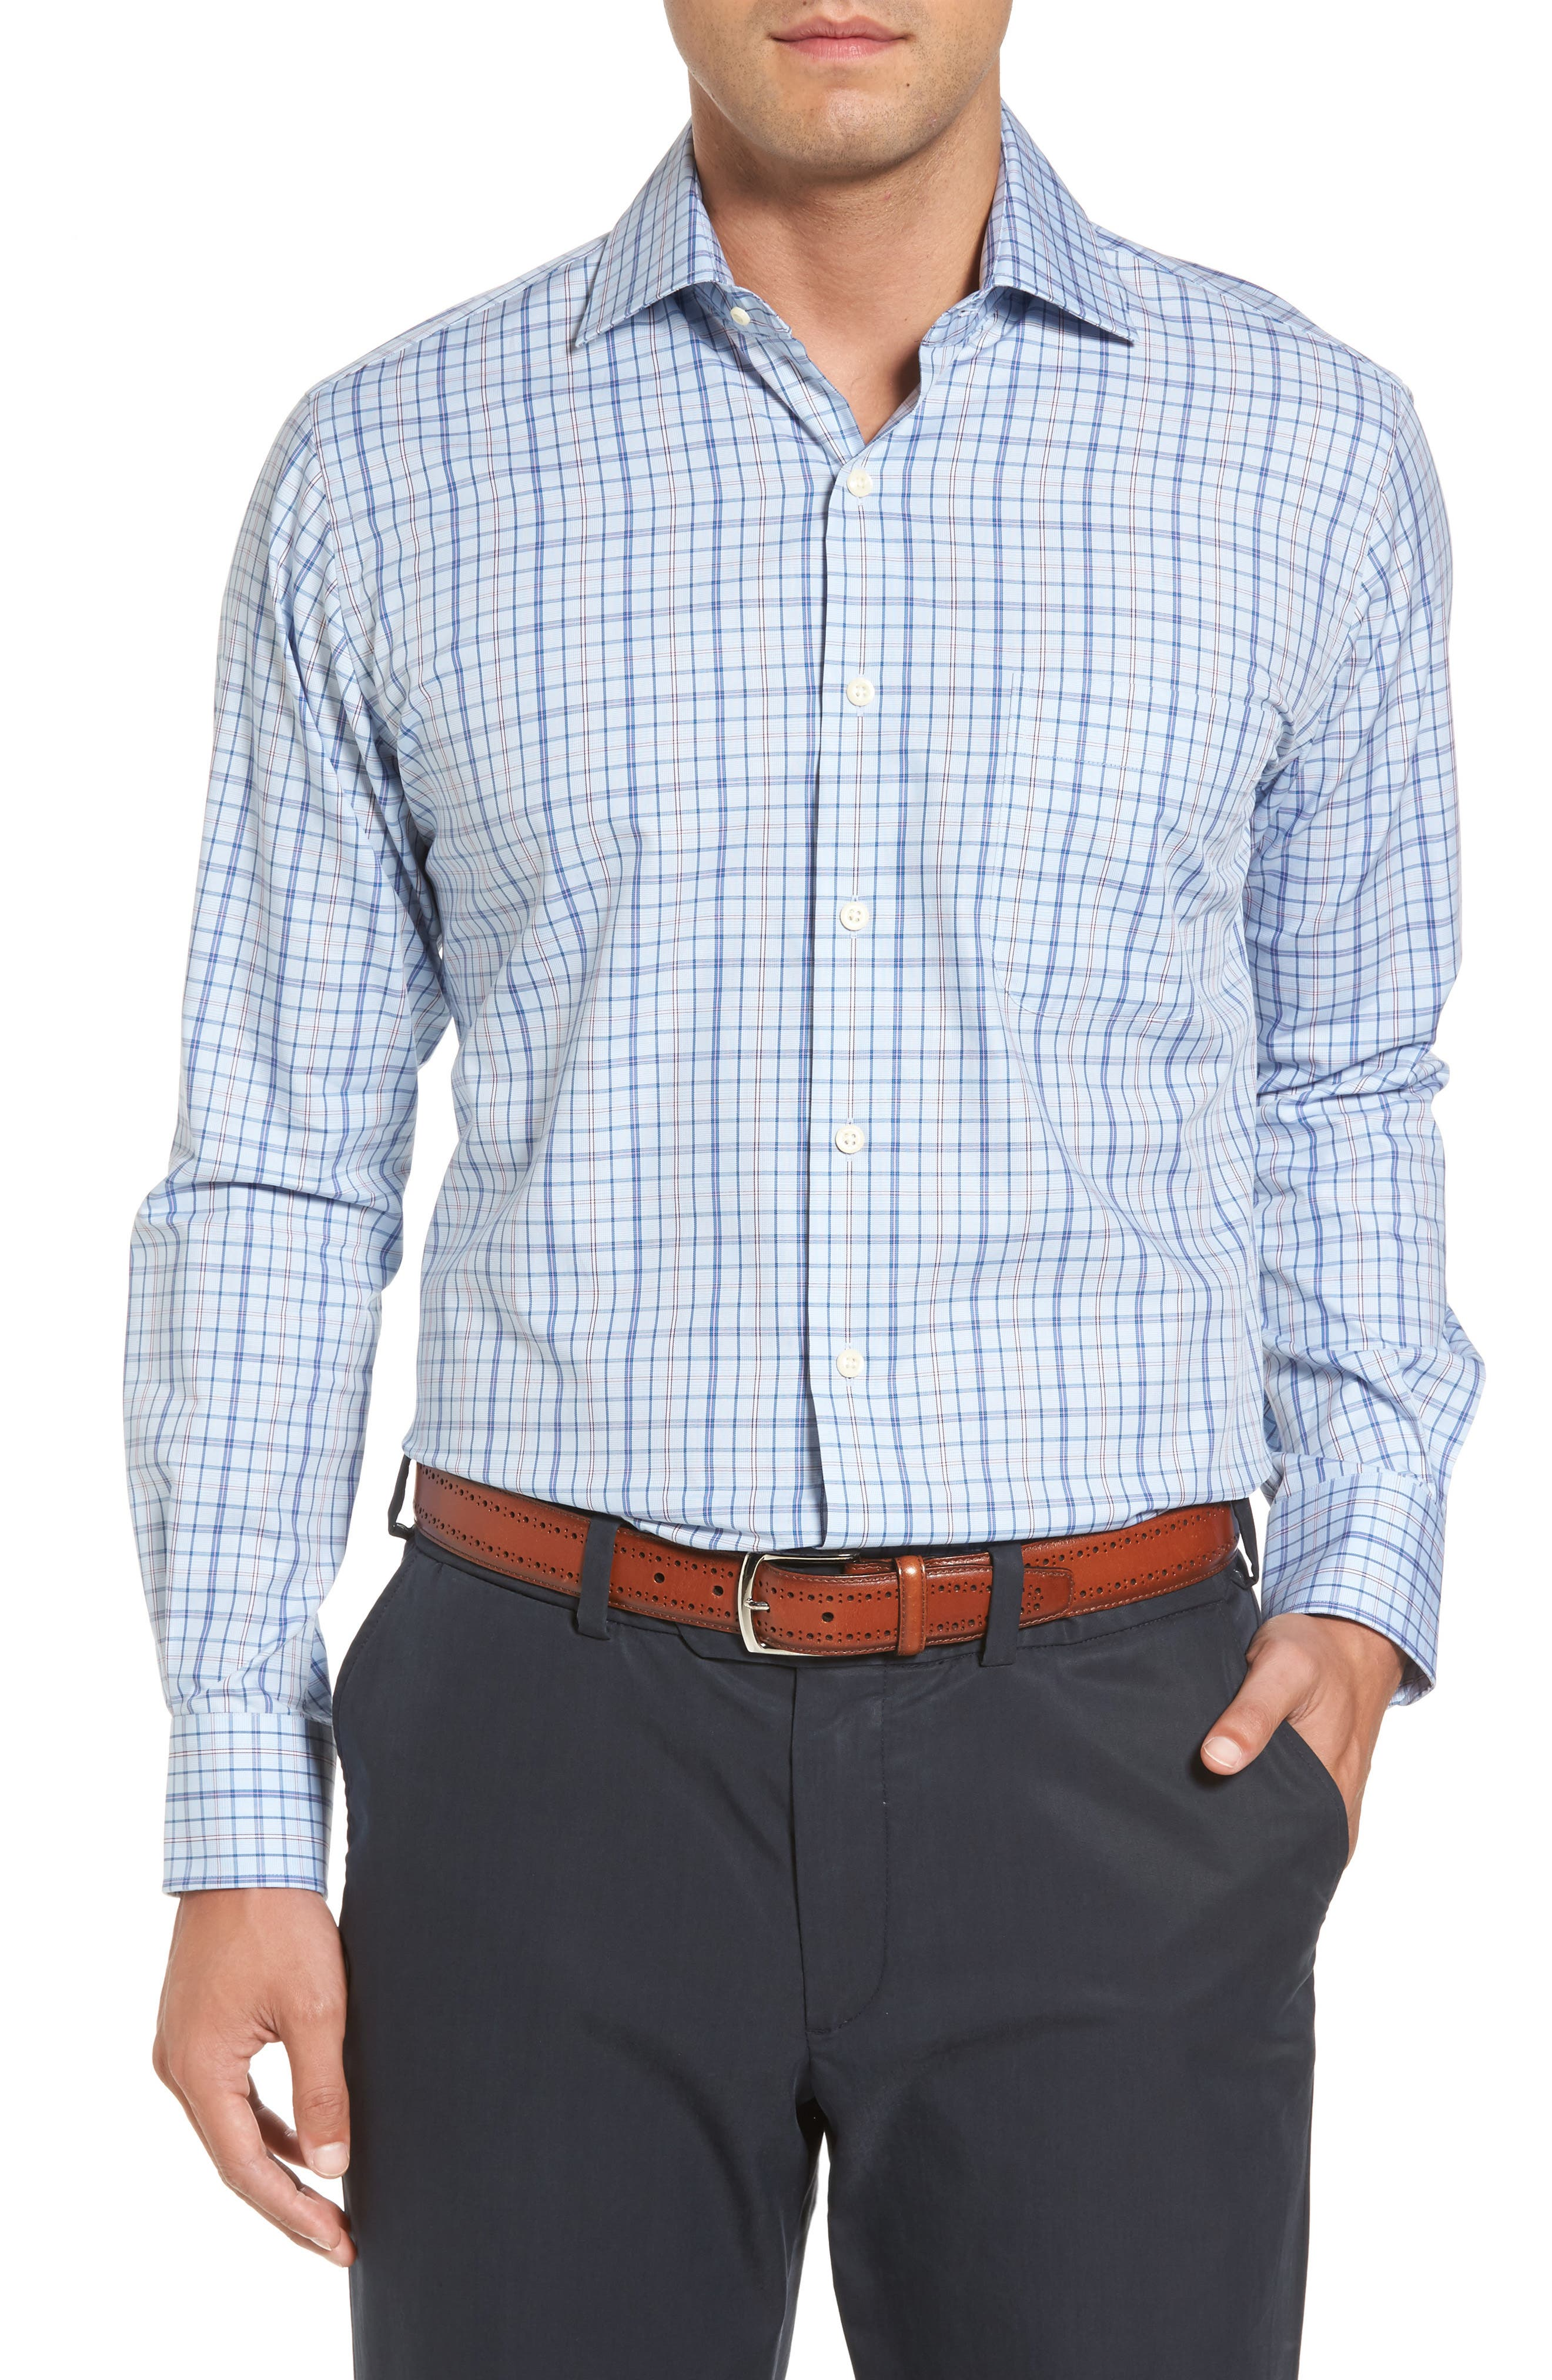 Coastland Regular Fit Plaid Sport Shirt,                         Main,                         color, 437